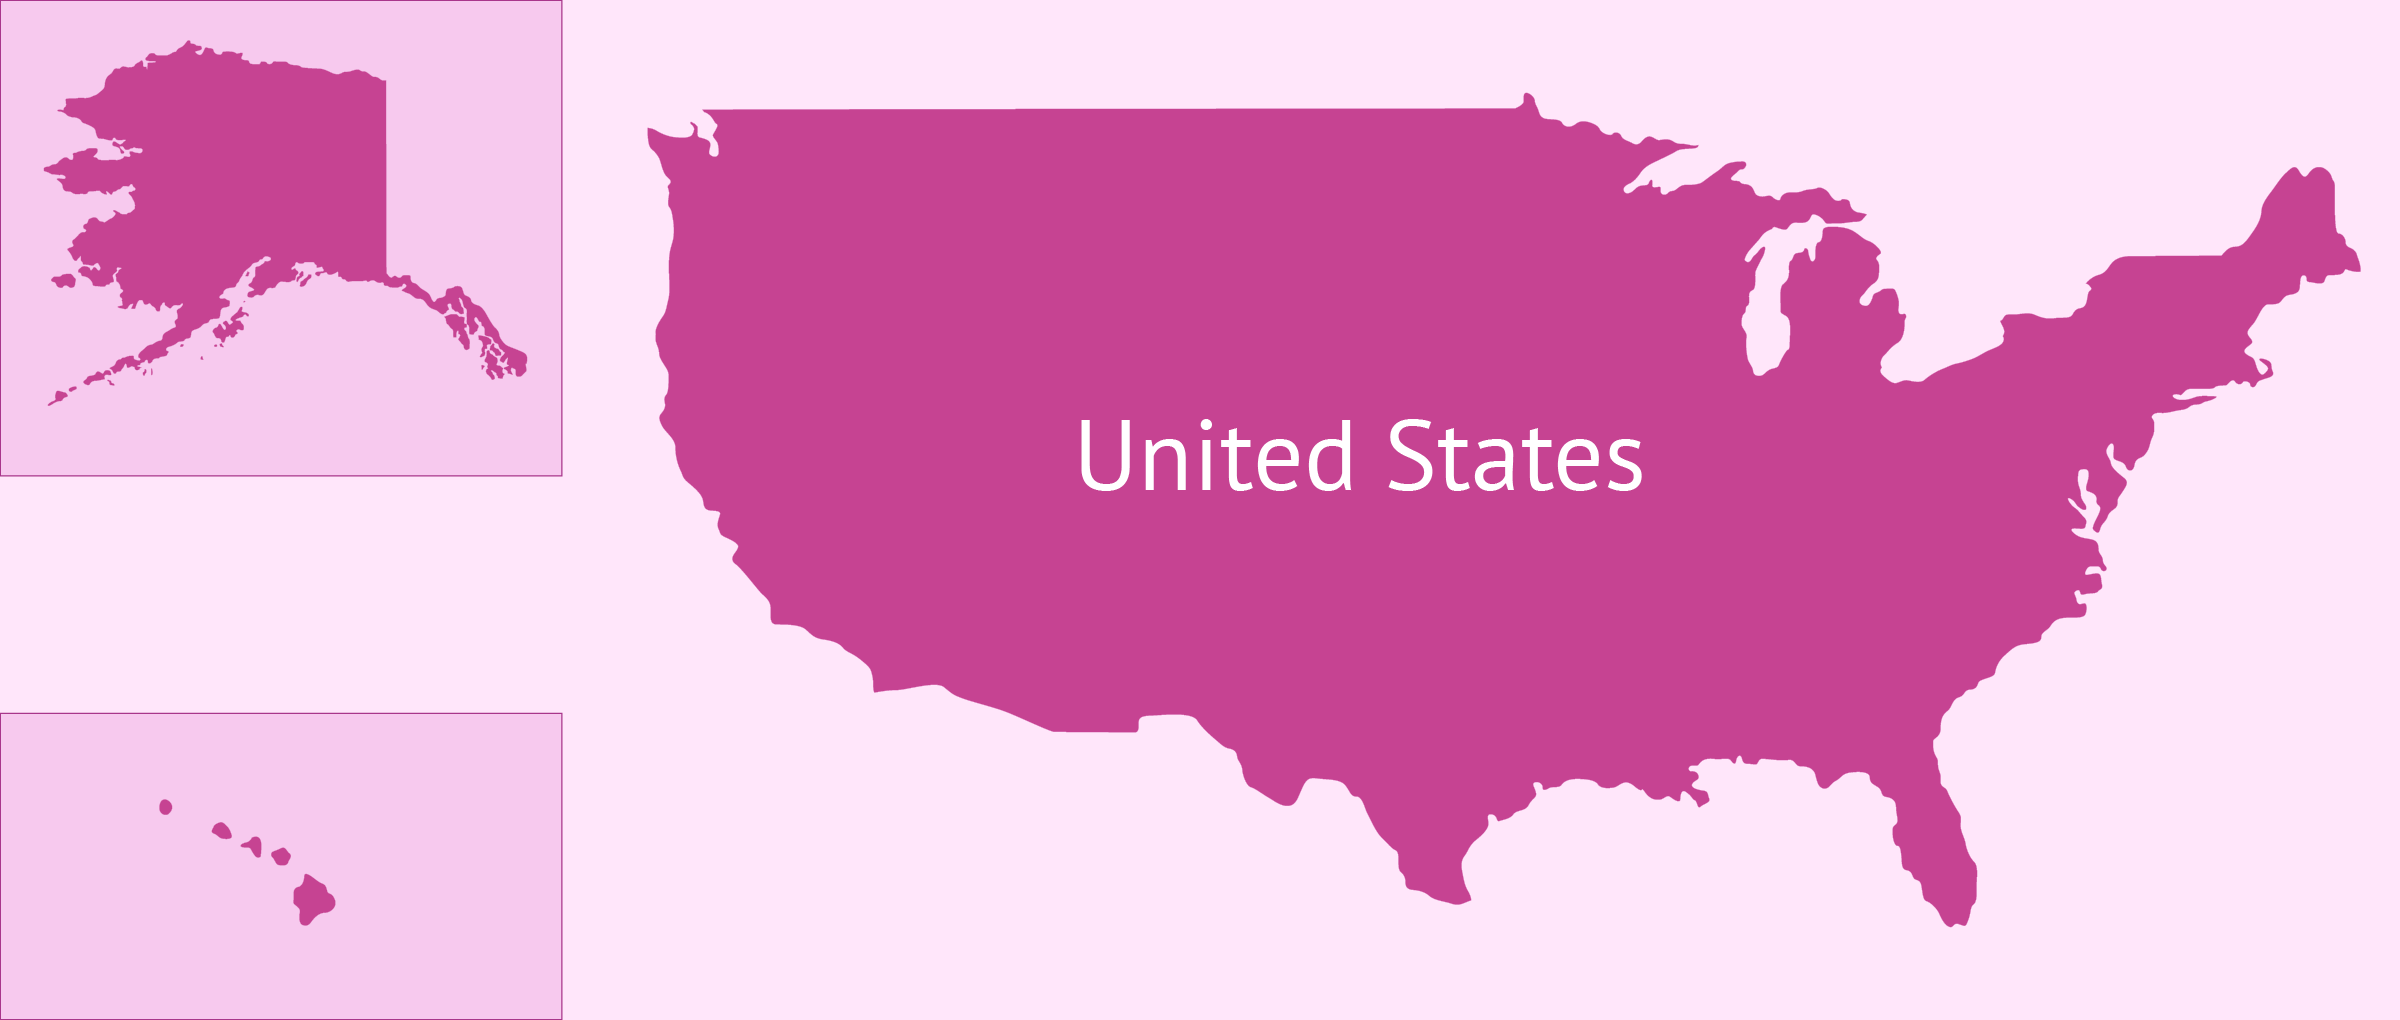 Surrogacy in the USA - Is It Legal in All 50 States?